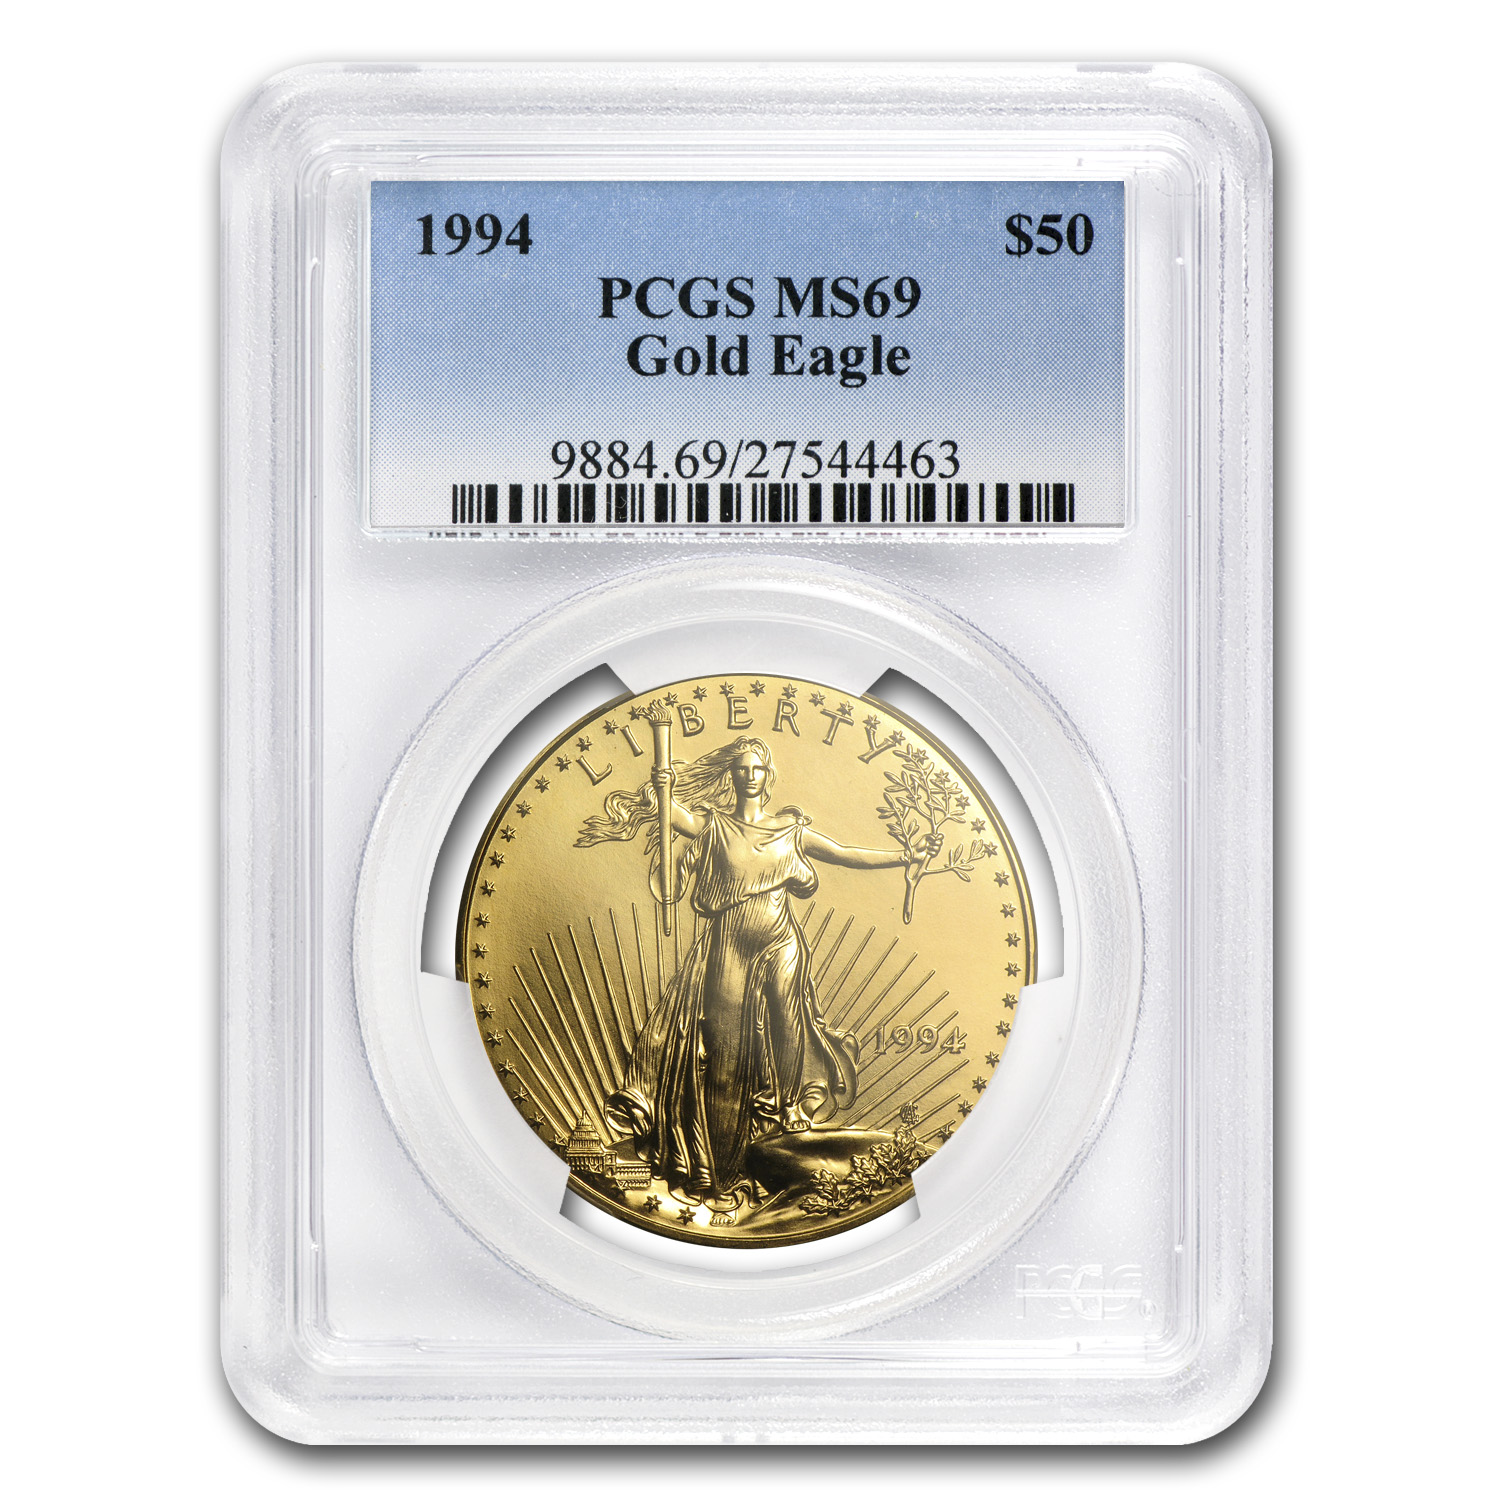 1994 1 oz Gold American Eagle MS-69 PCGS